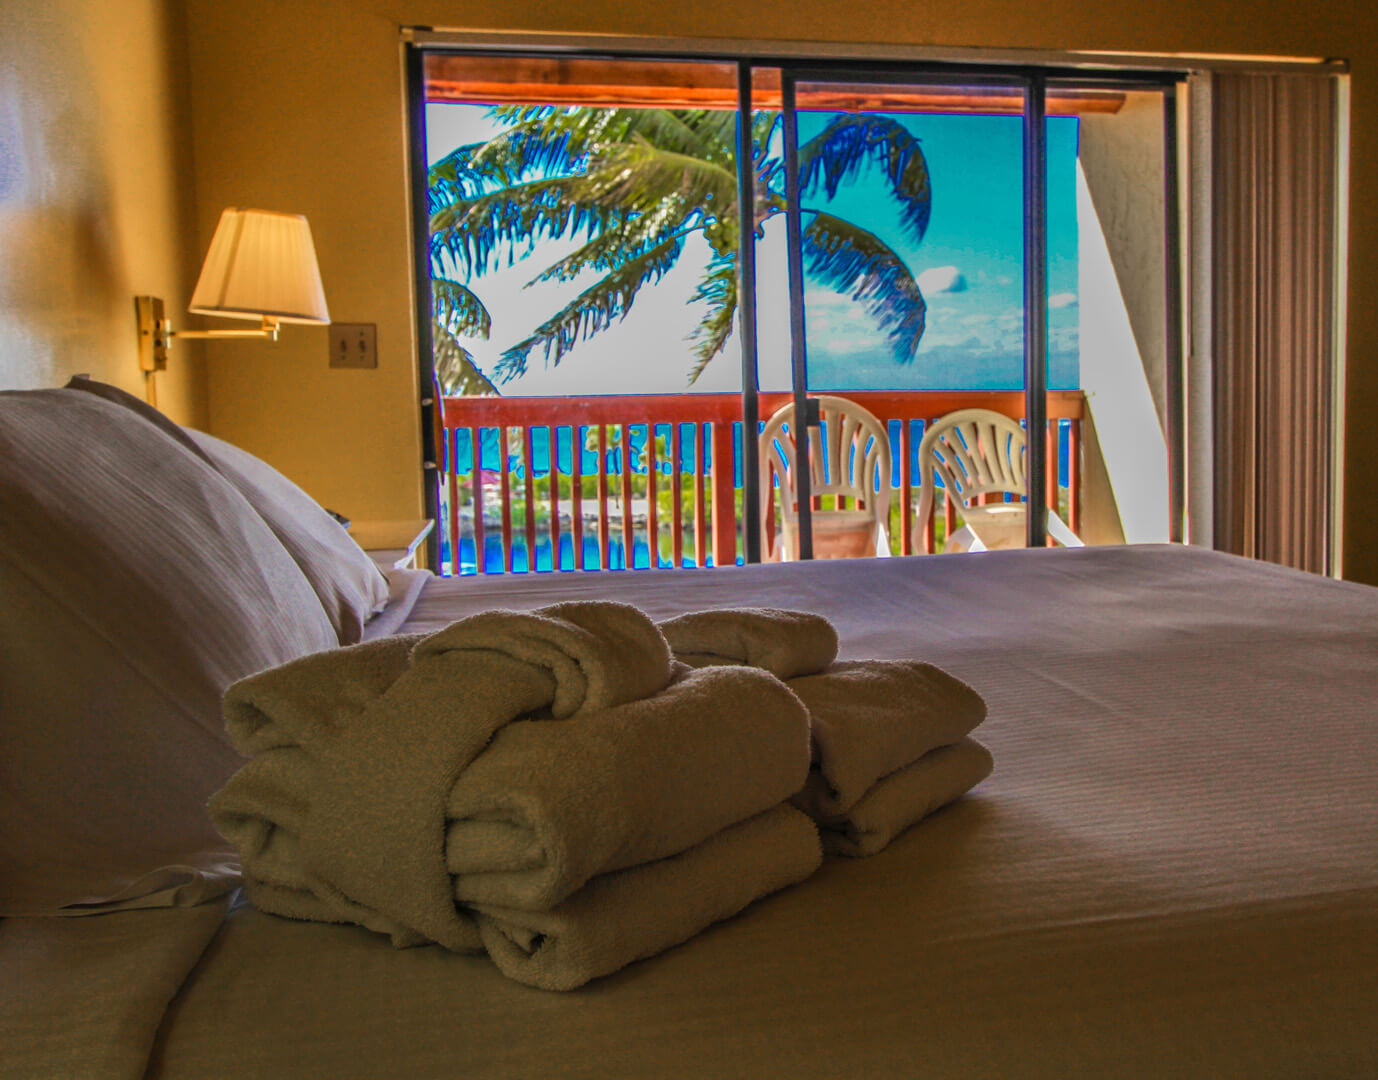 A crisp master bedroom with a balcony deck at VRI's Florida Bay Club in Florida.